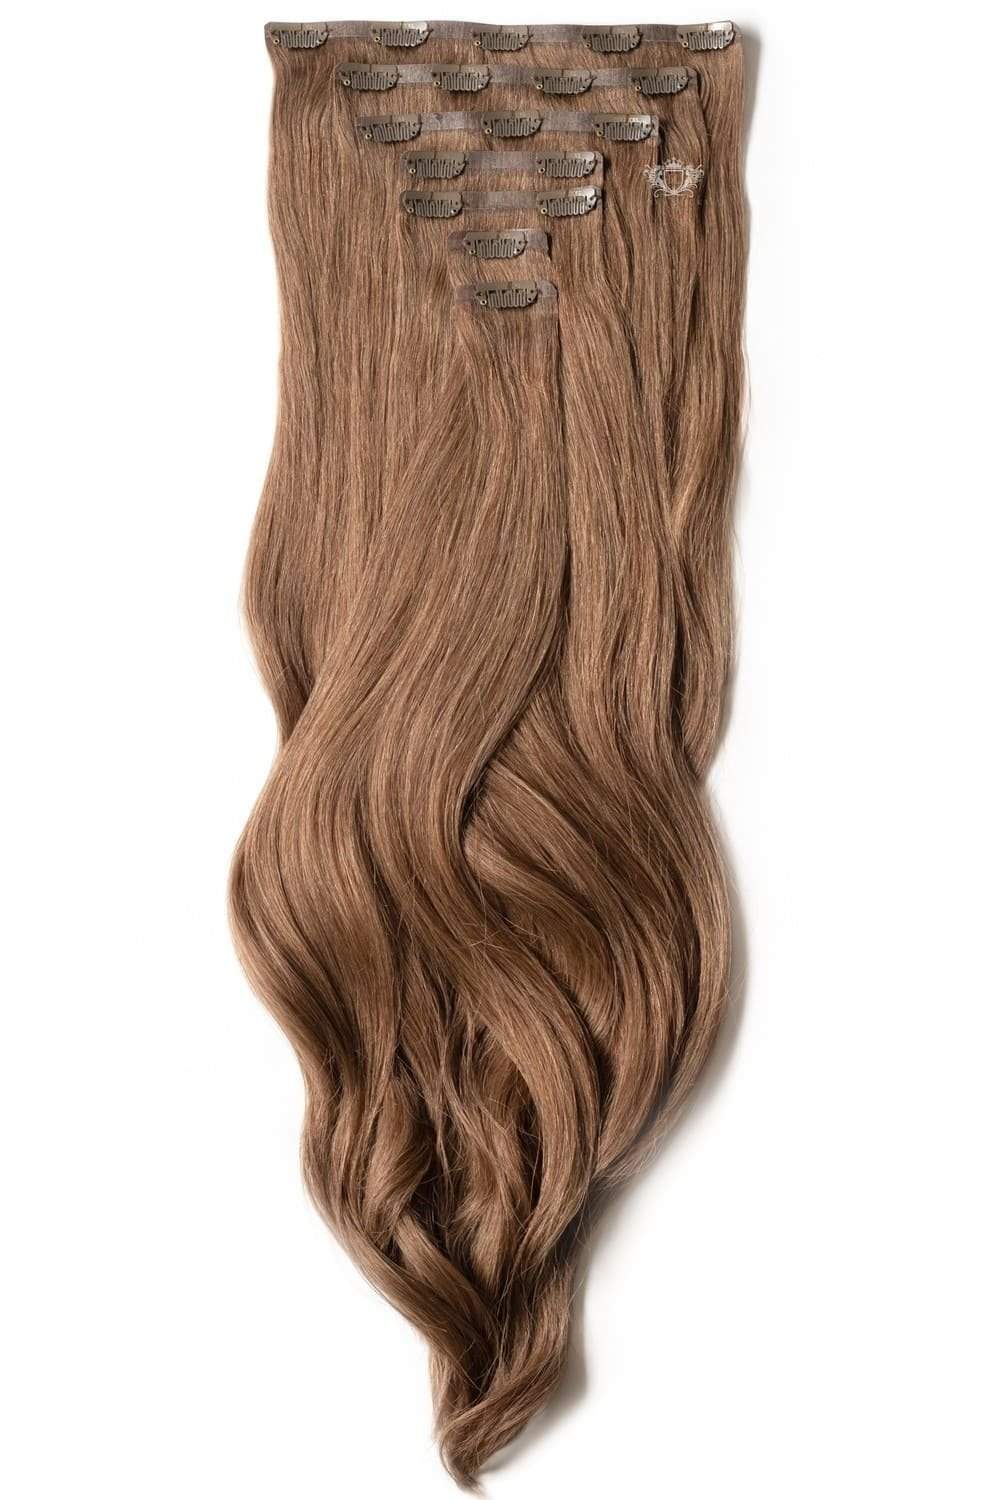 Chestnut Luxurious Seamless 24 Clip In Human Hair Extensions 280g